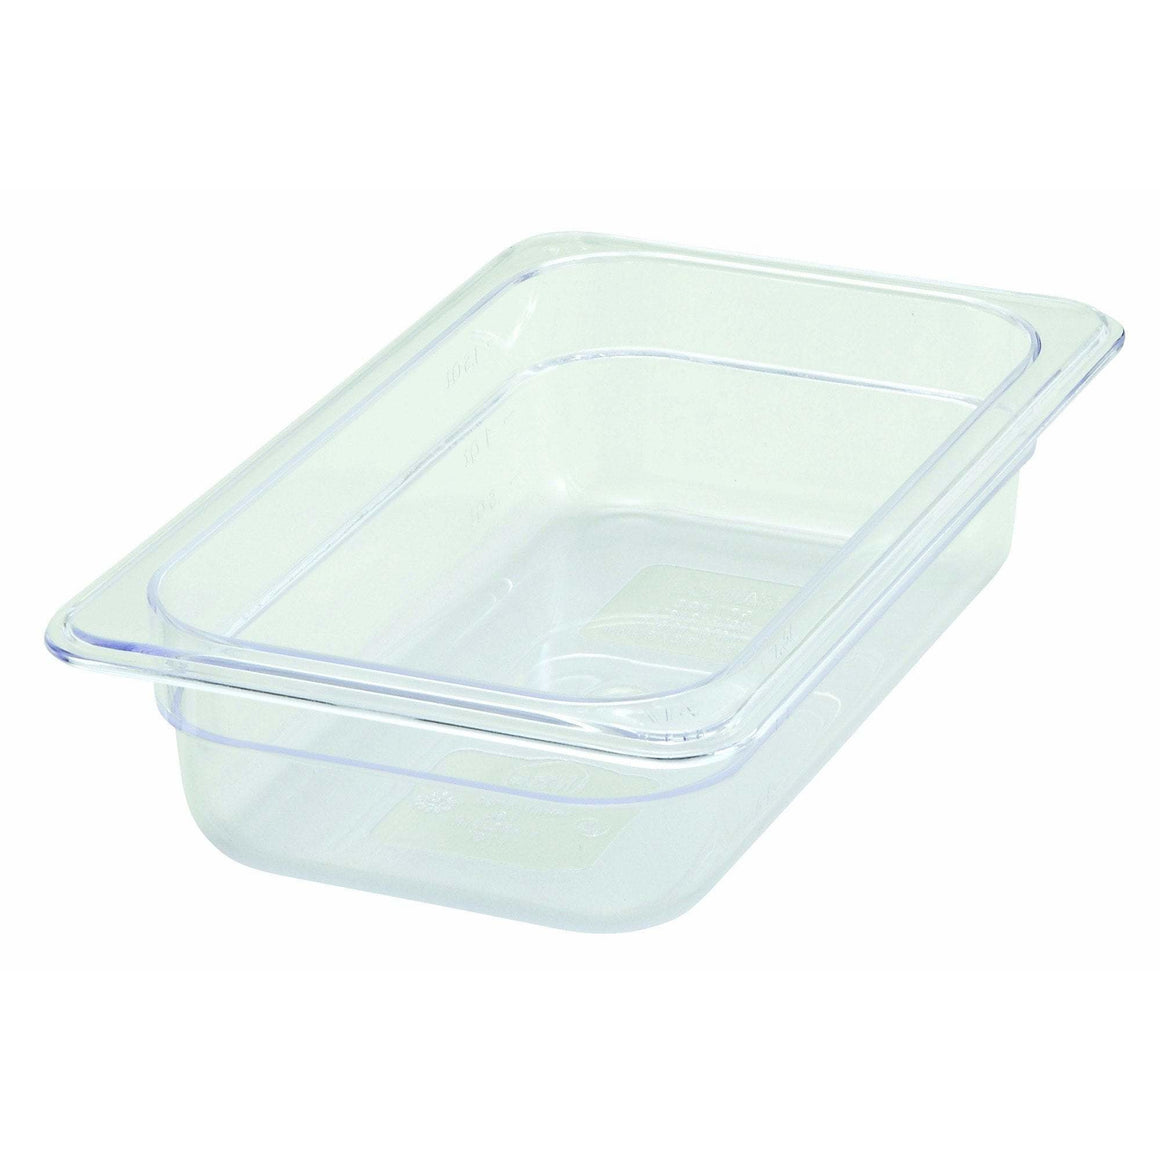 "Winco - SP7402 - PC Food Pan, 1/4 Size, 2-1/2"" - Food Storage"